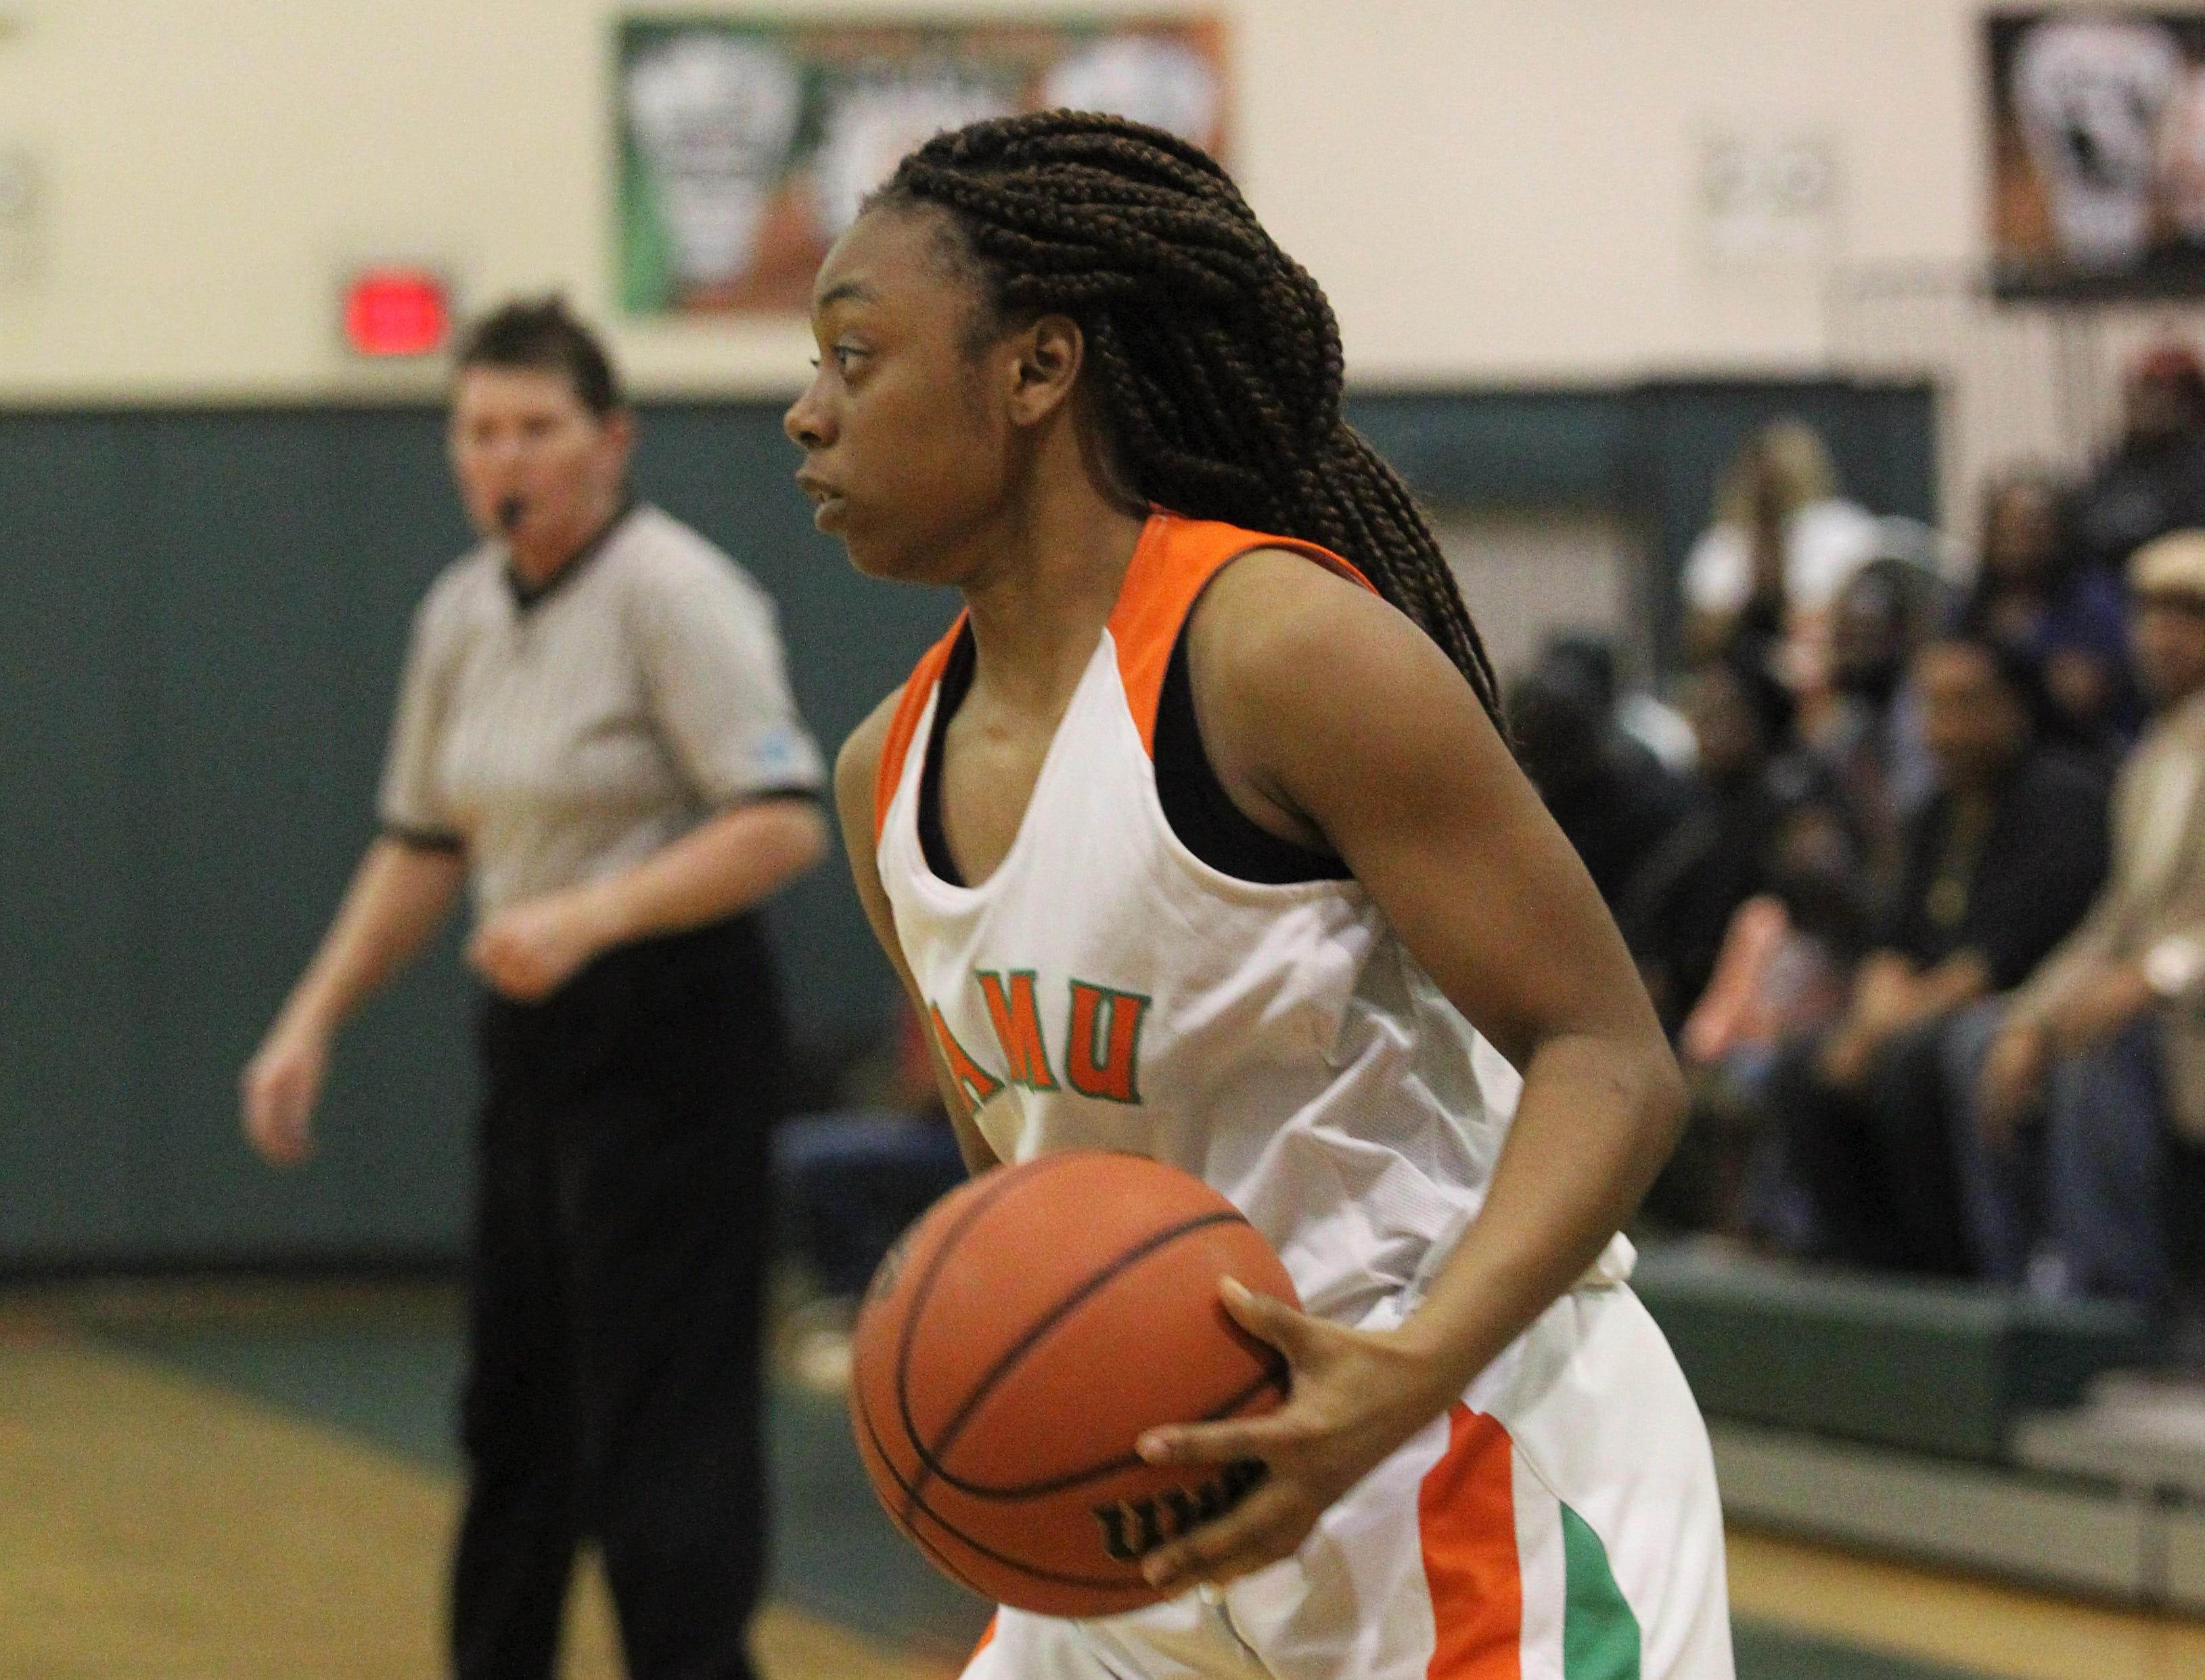 FAMU DRS' girls basketball team beat NFC 59-41 for a District 1-3A title on Jan. 7, 2019.